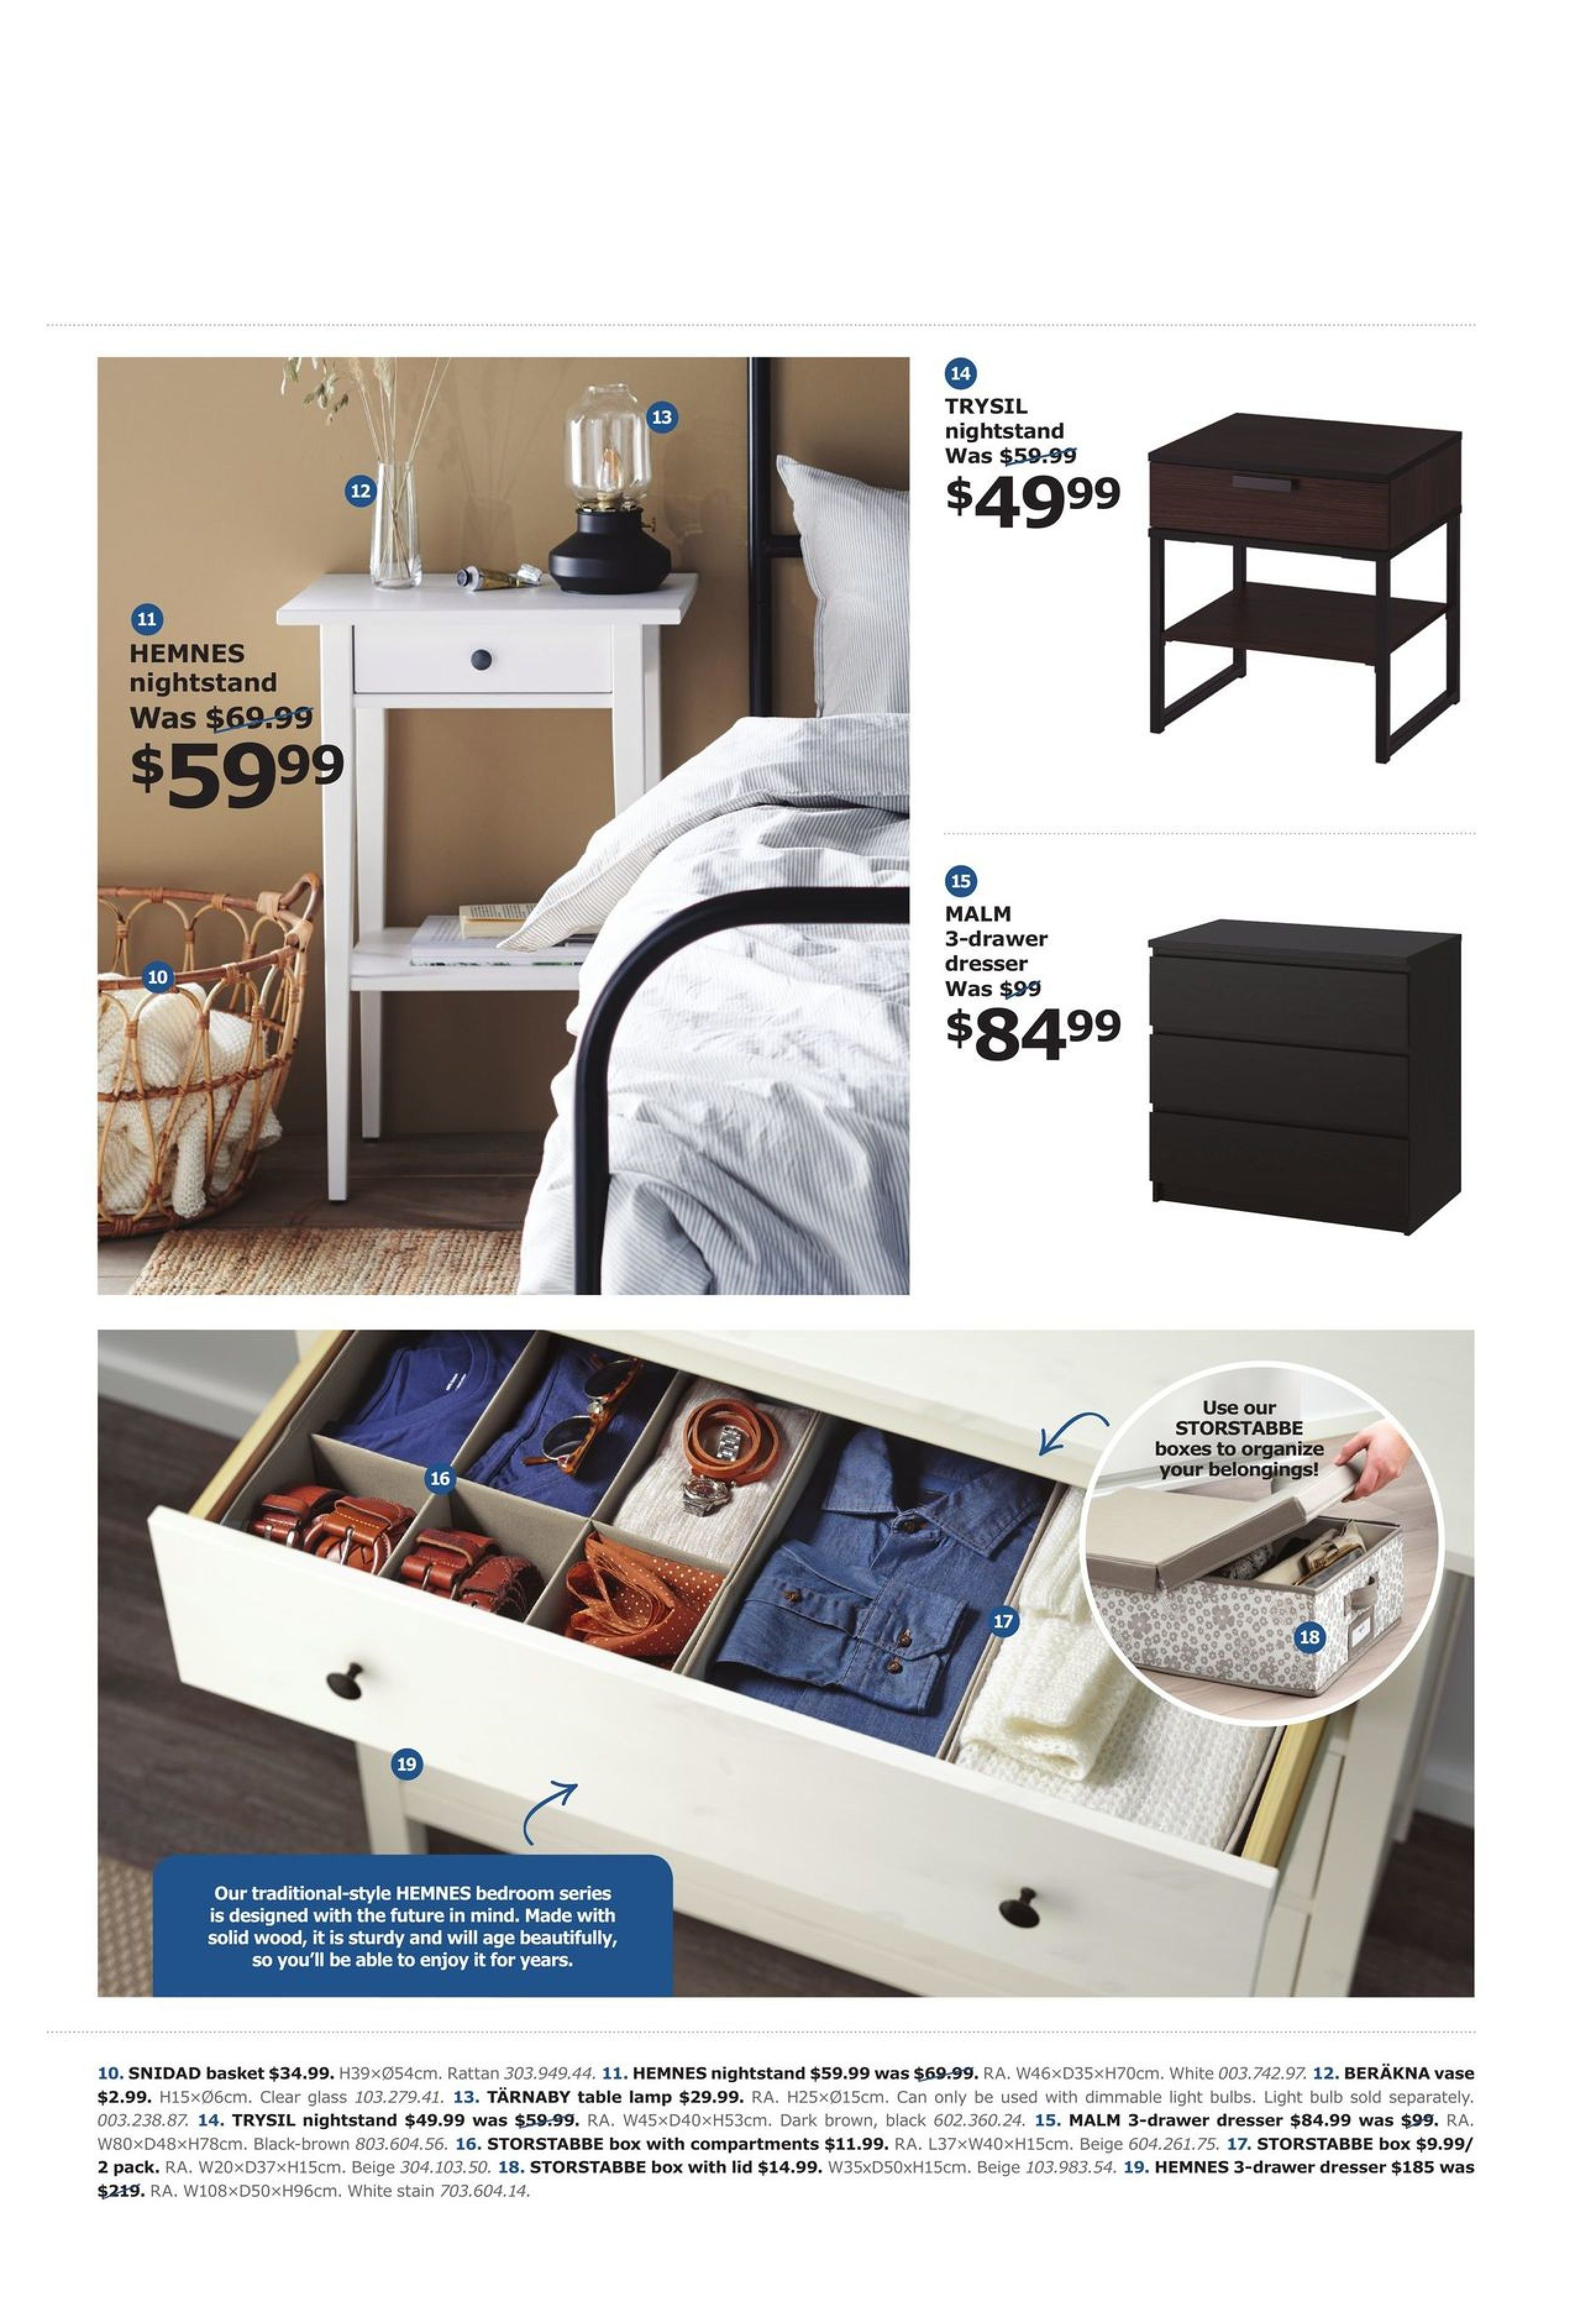 IKEA Weekly Flyer - The Bedroom Event - Apr 10 – May 10